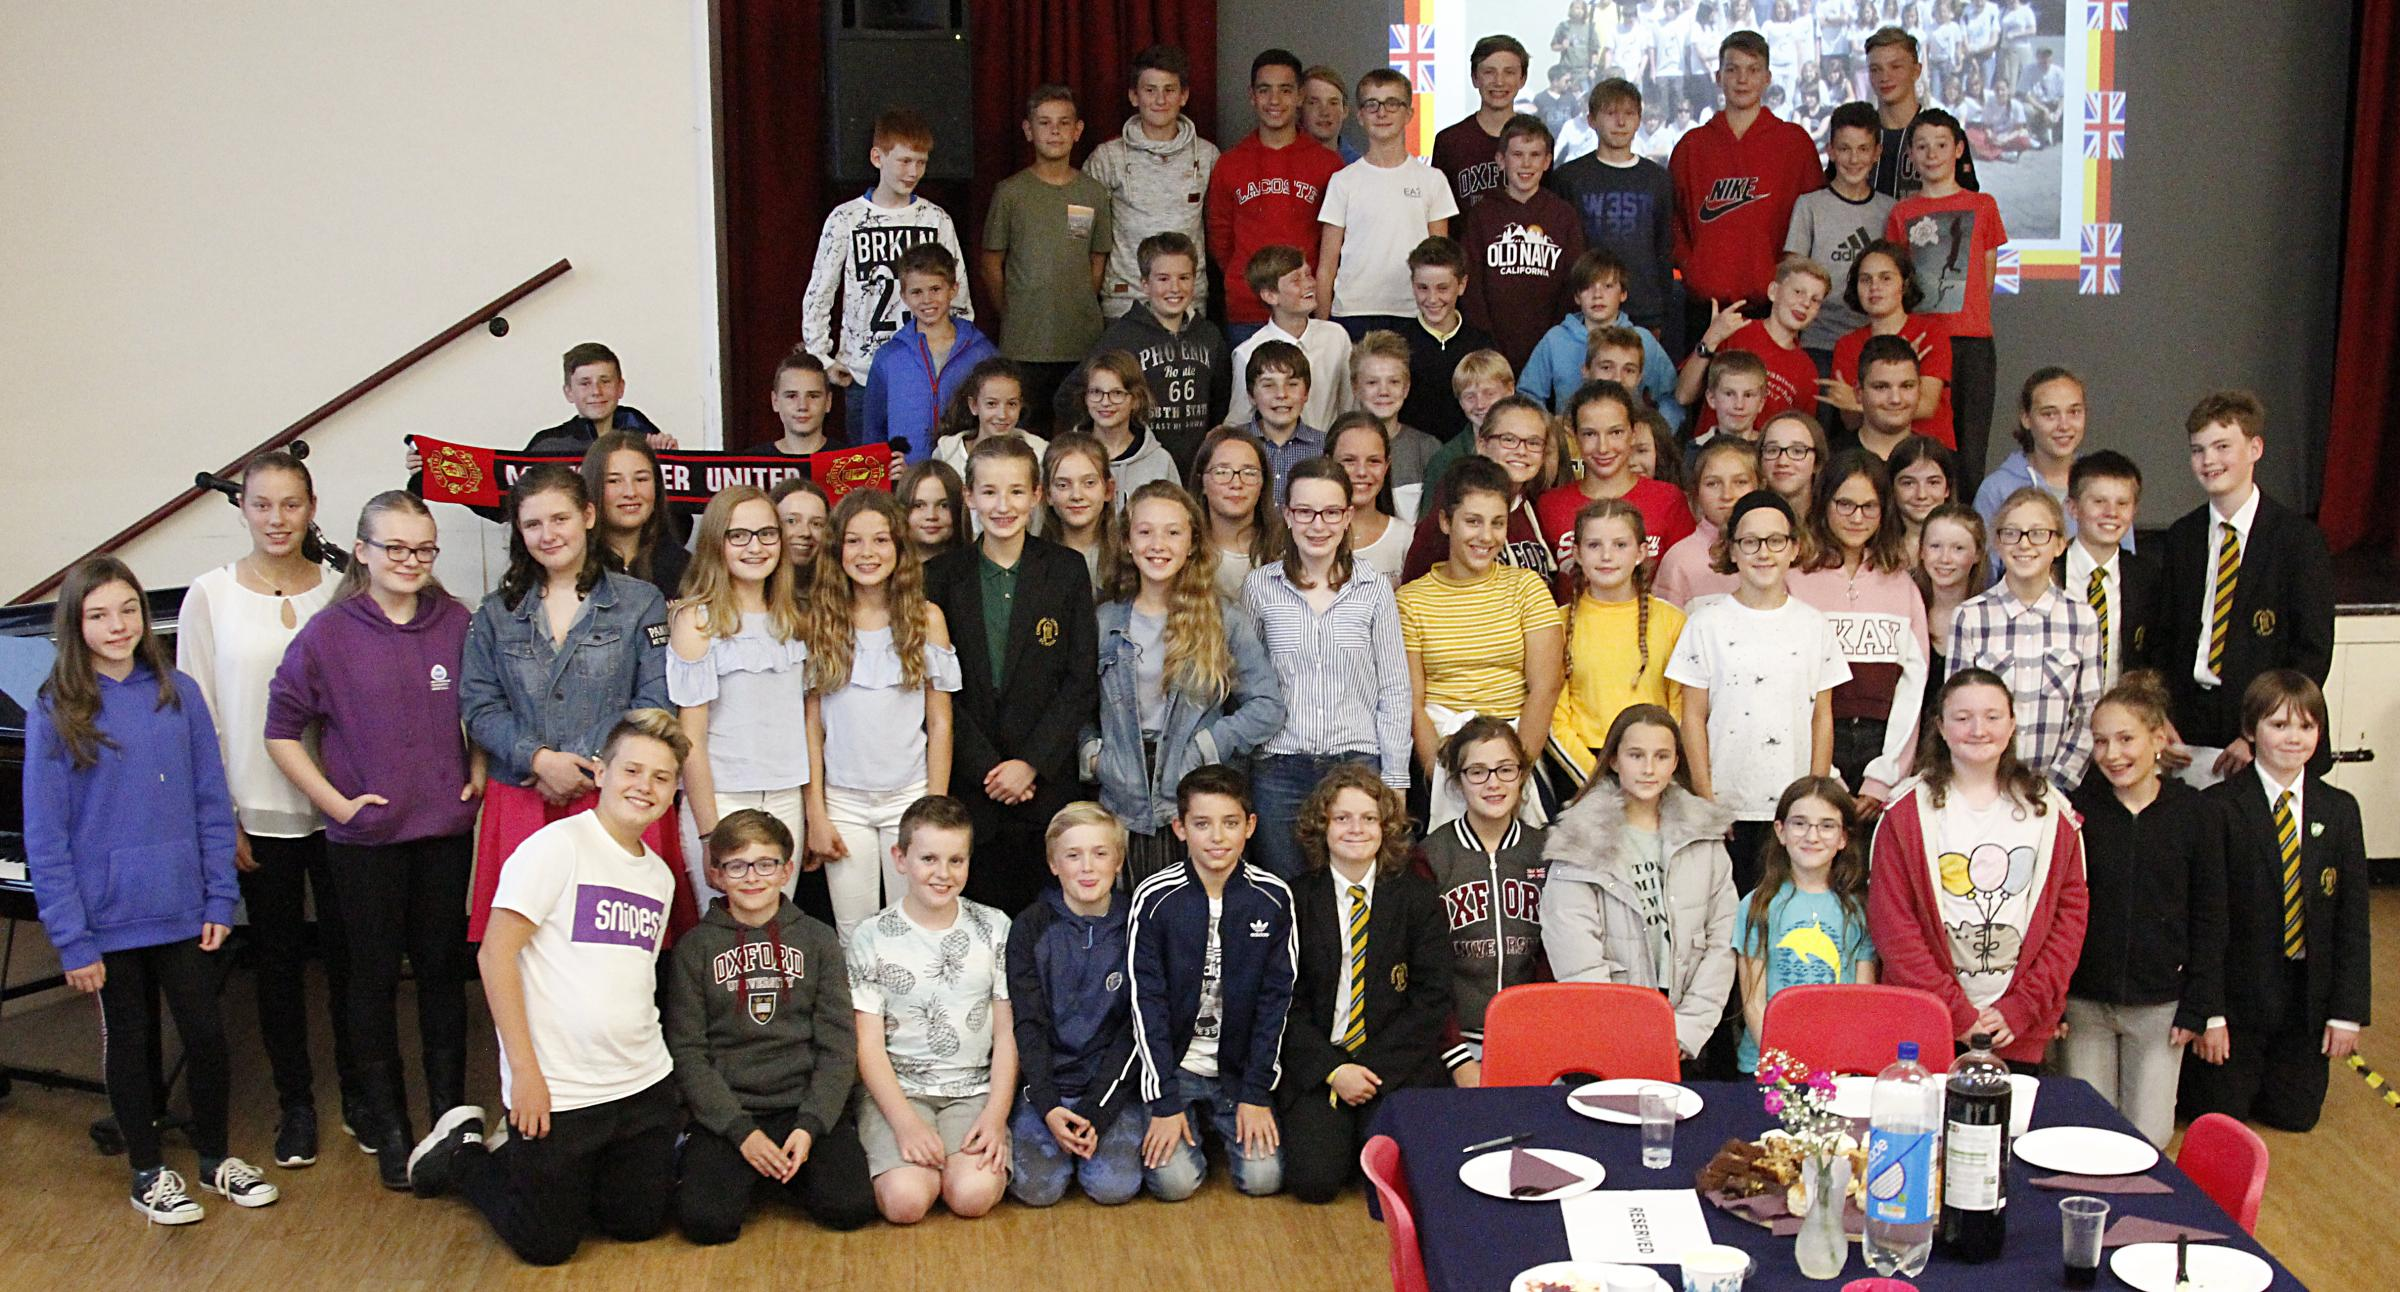 GET TOGETHER: Students from Chipping Norton School and their German Exchange partners Picture: Kieran McPhillips